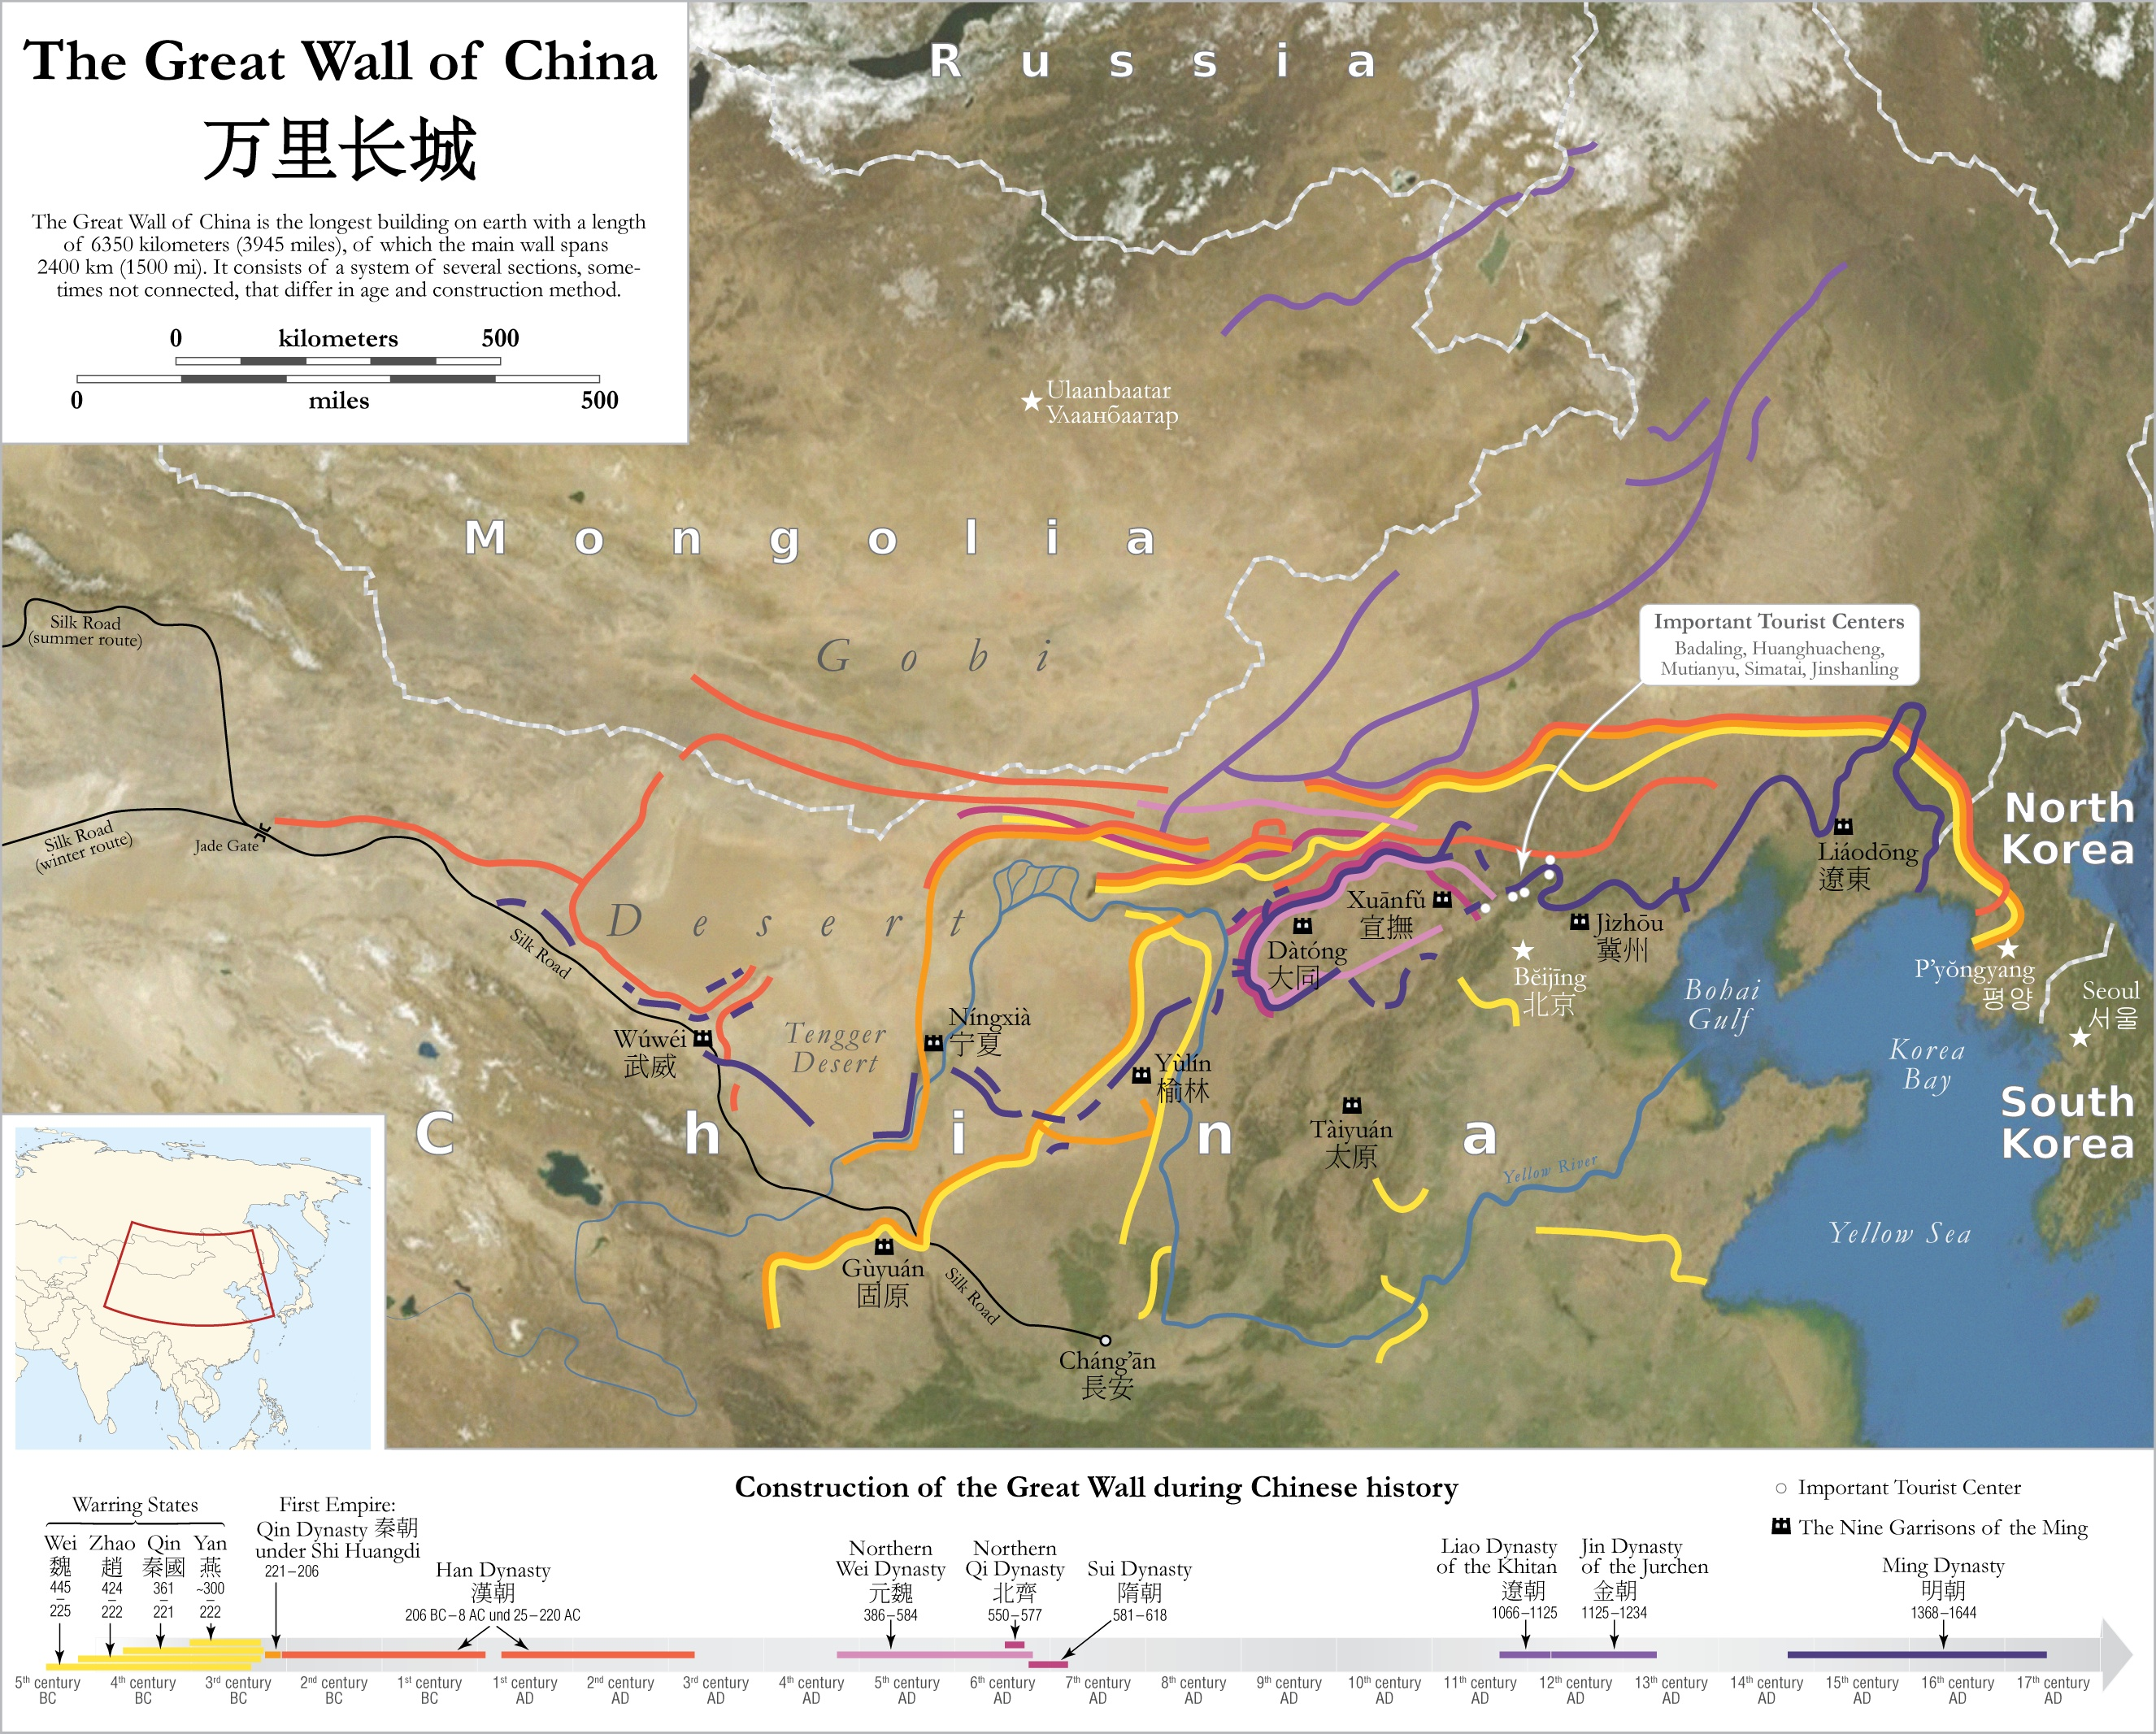 Historia de la Muralla China Map_of_the_Great_Wall_of_China